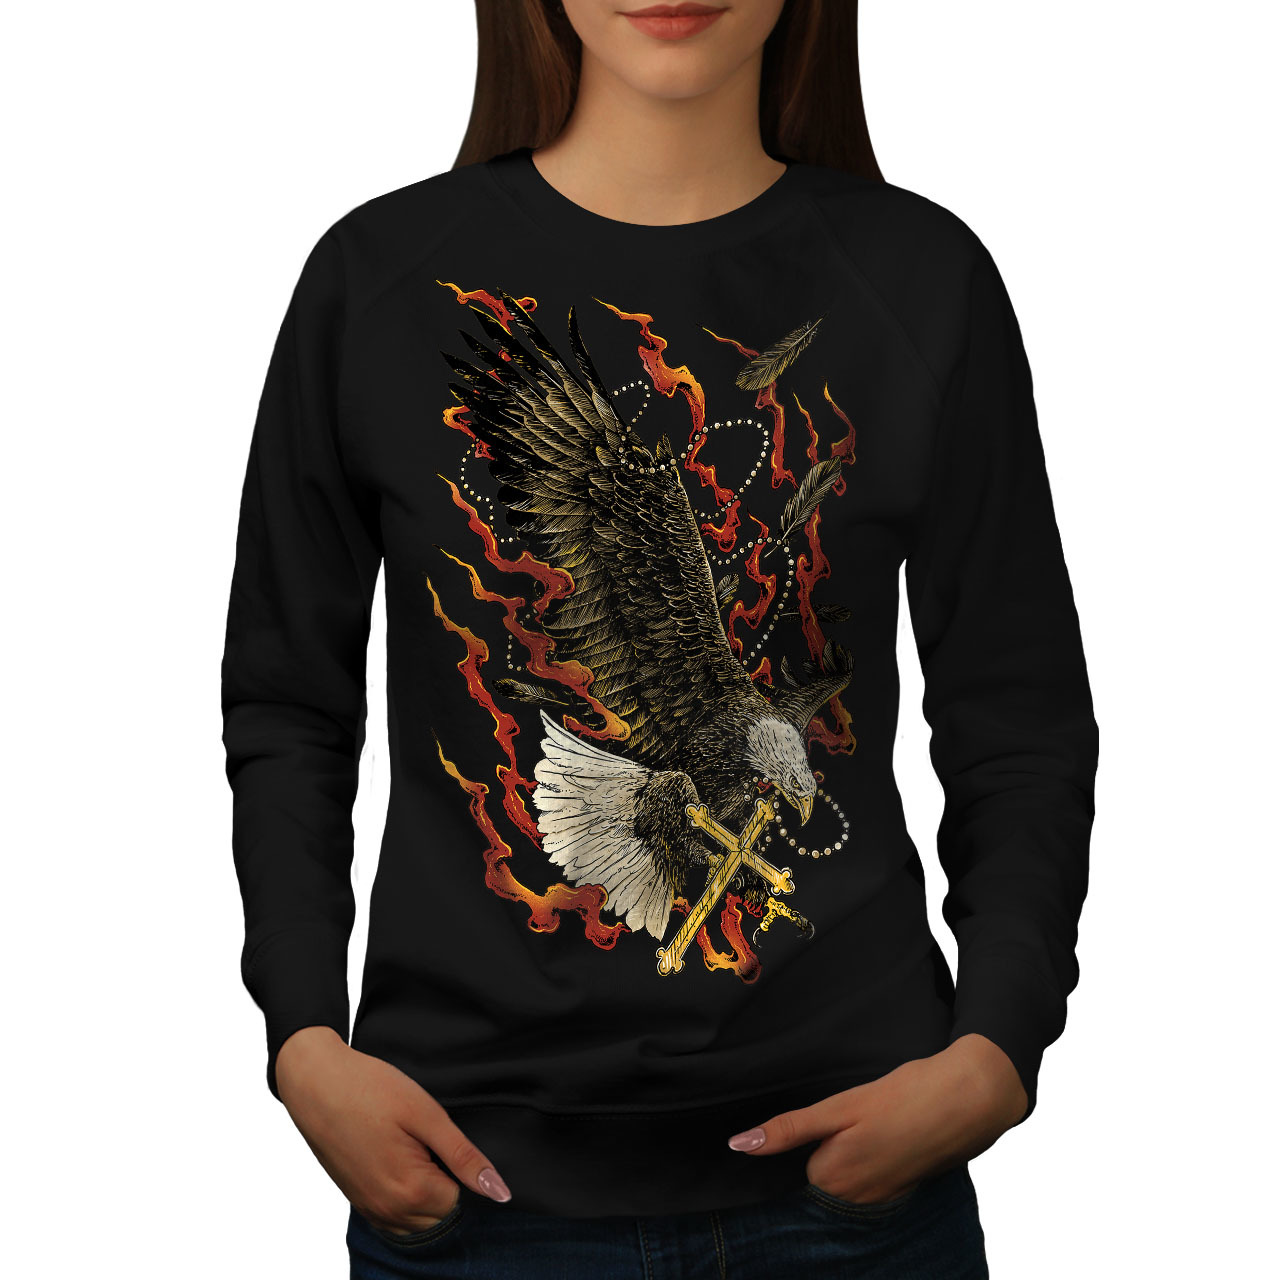 Primary image for Eagle Cross Fire Fashion Jumper  Women Sweatshirt